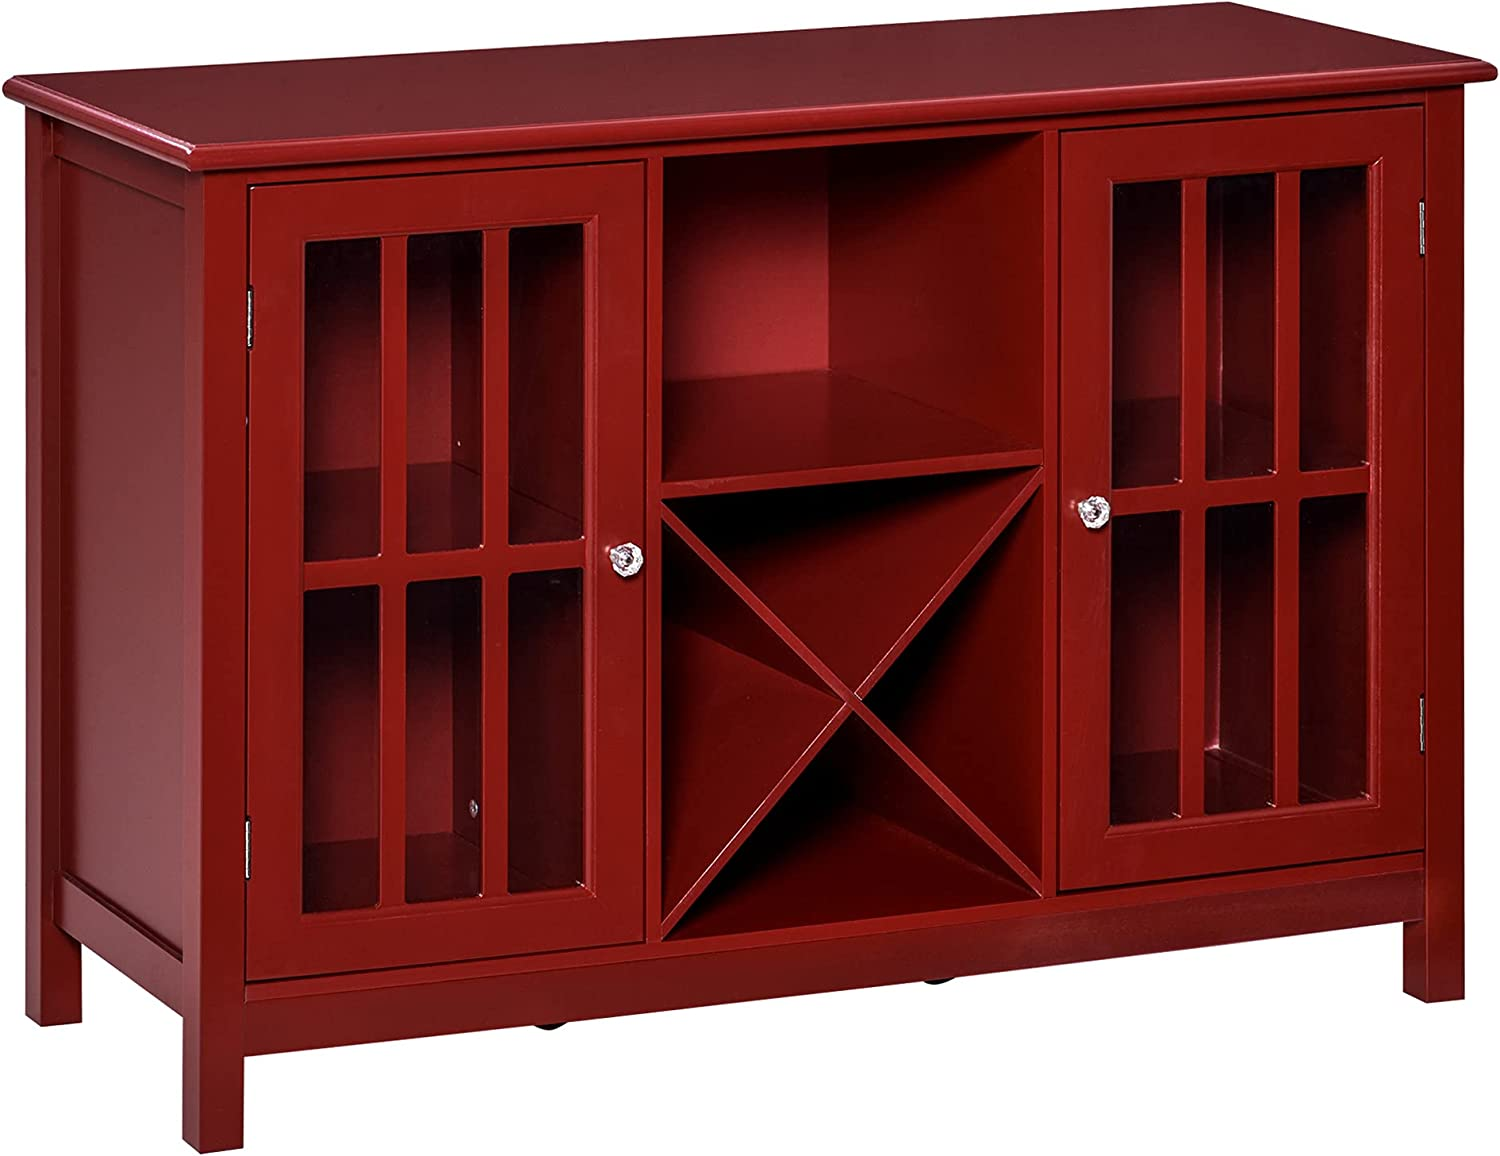 HOMCOM Serving Buffet Sideboard Cabinet with Open Storage, 12 Bottle Wine Rack, Framed Glass Doors and 2 Cabinets, Red